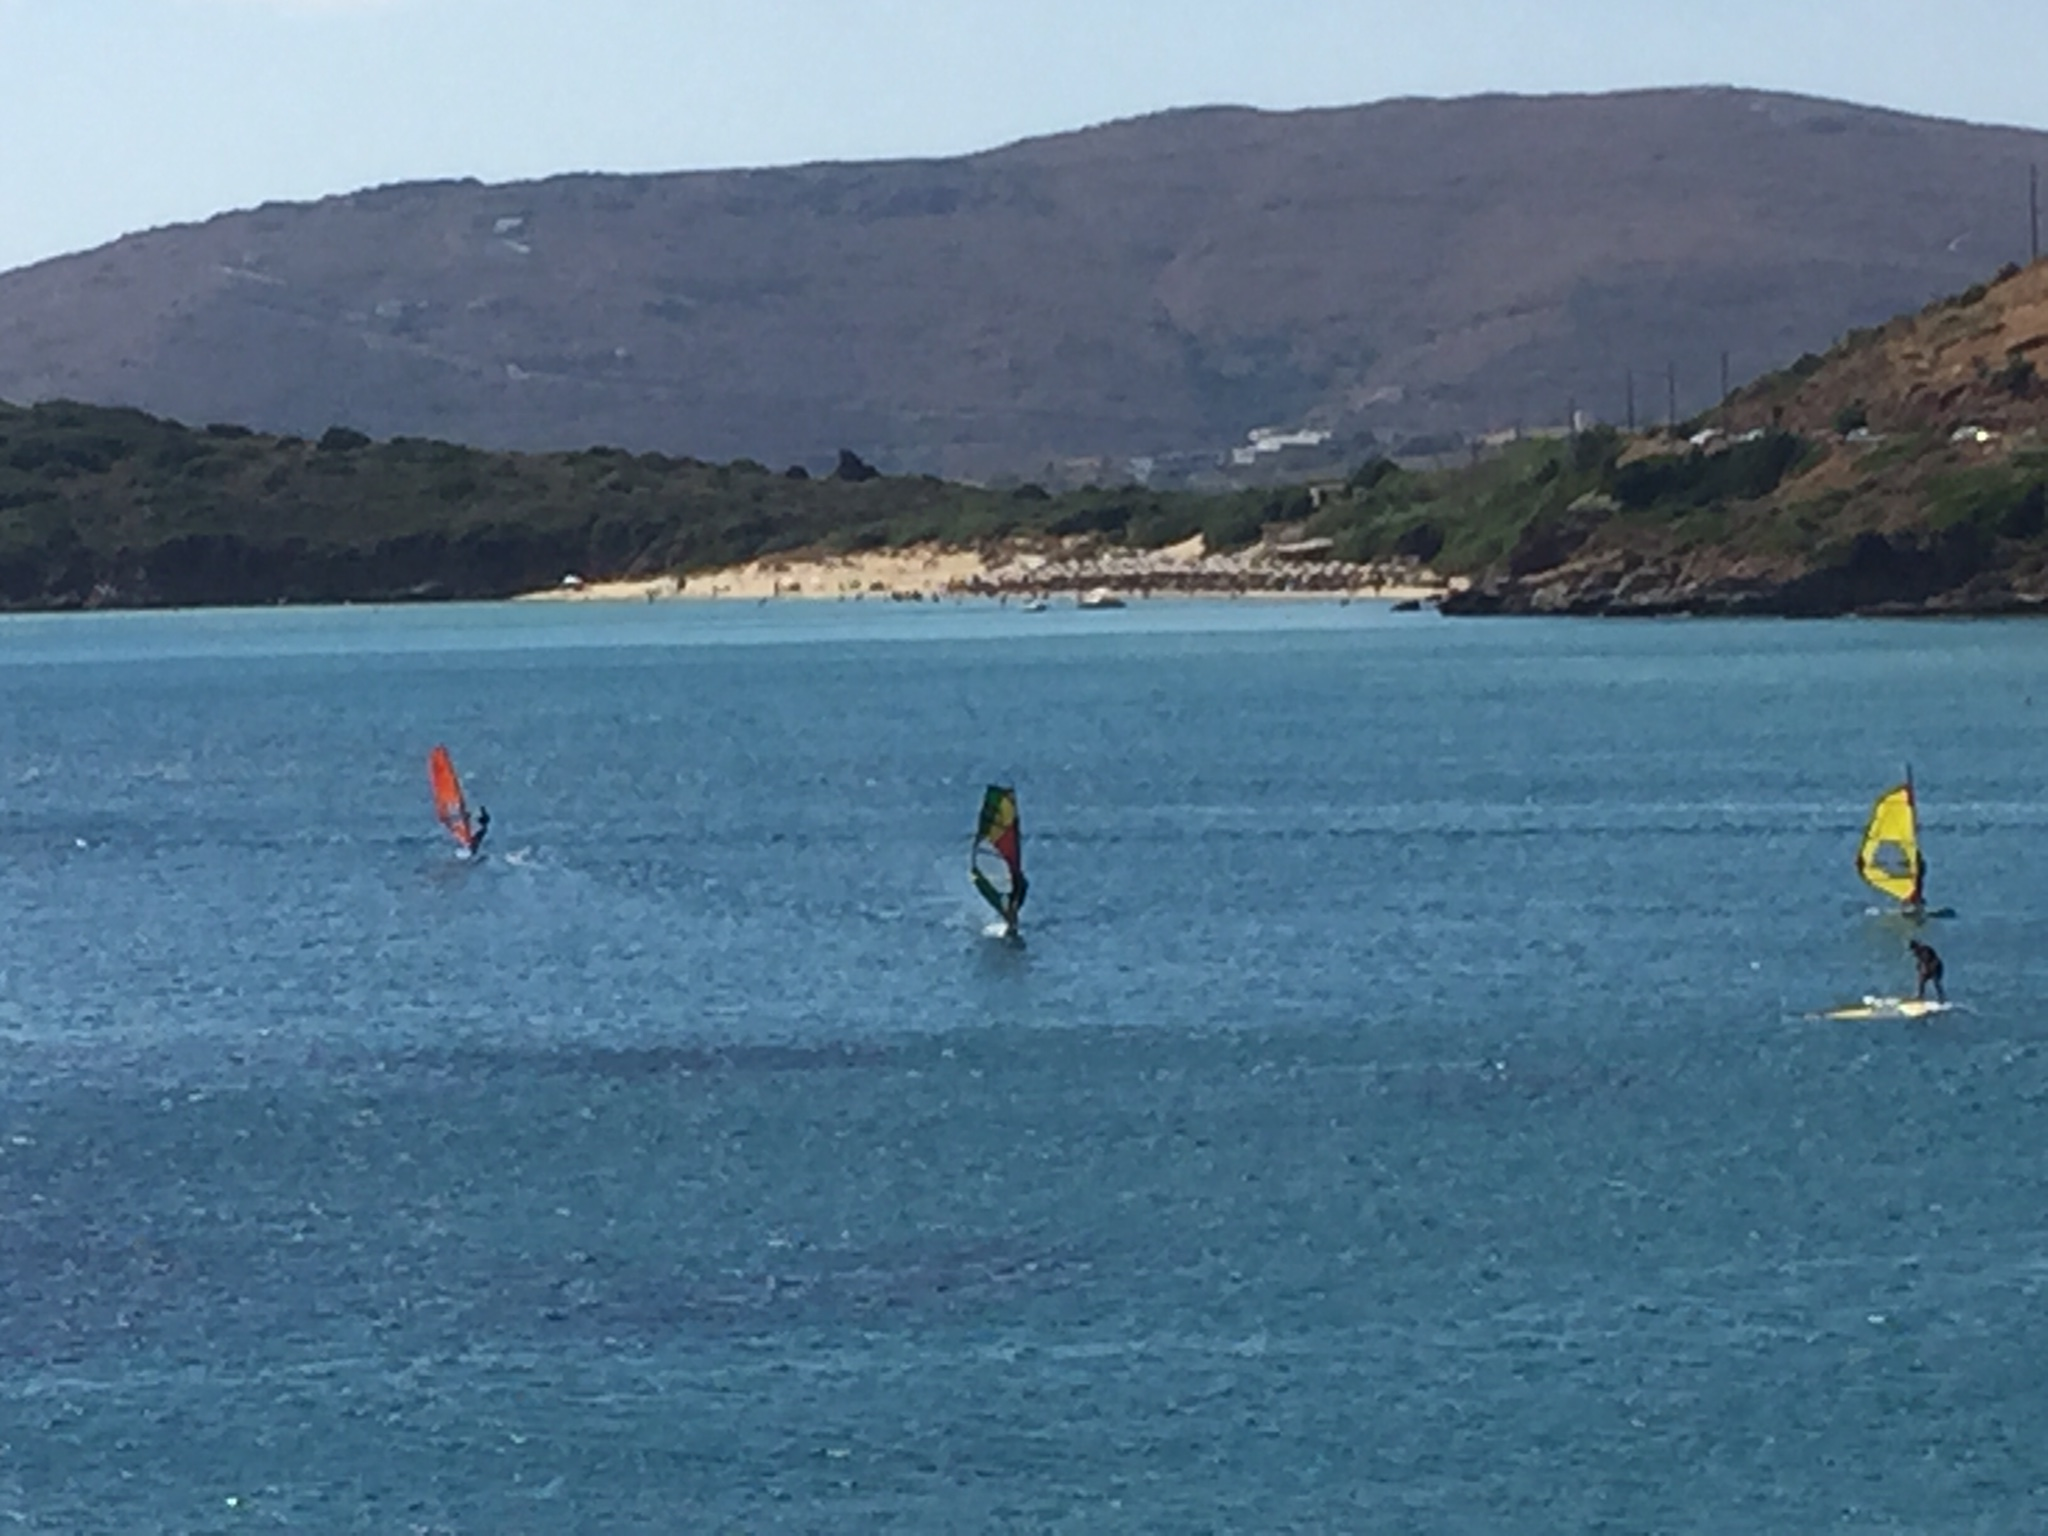 Surfers at Kypri bay